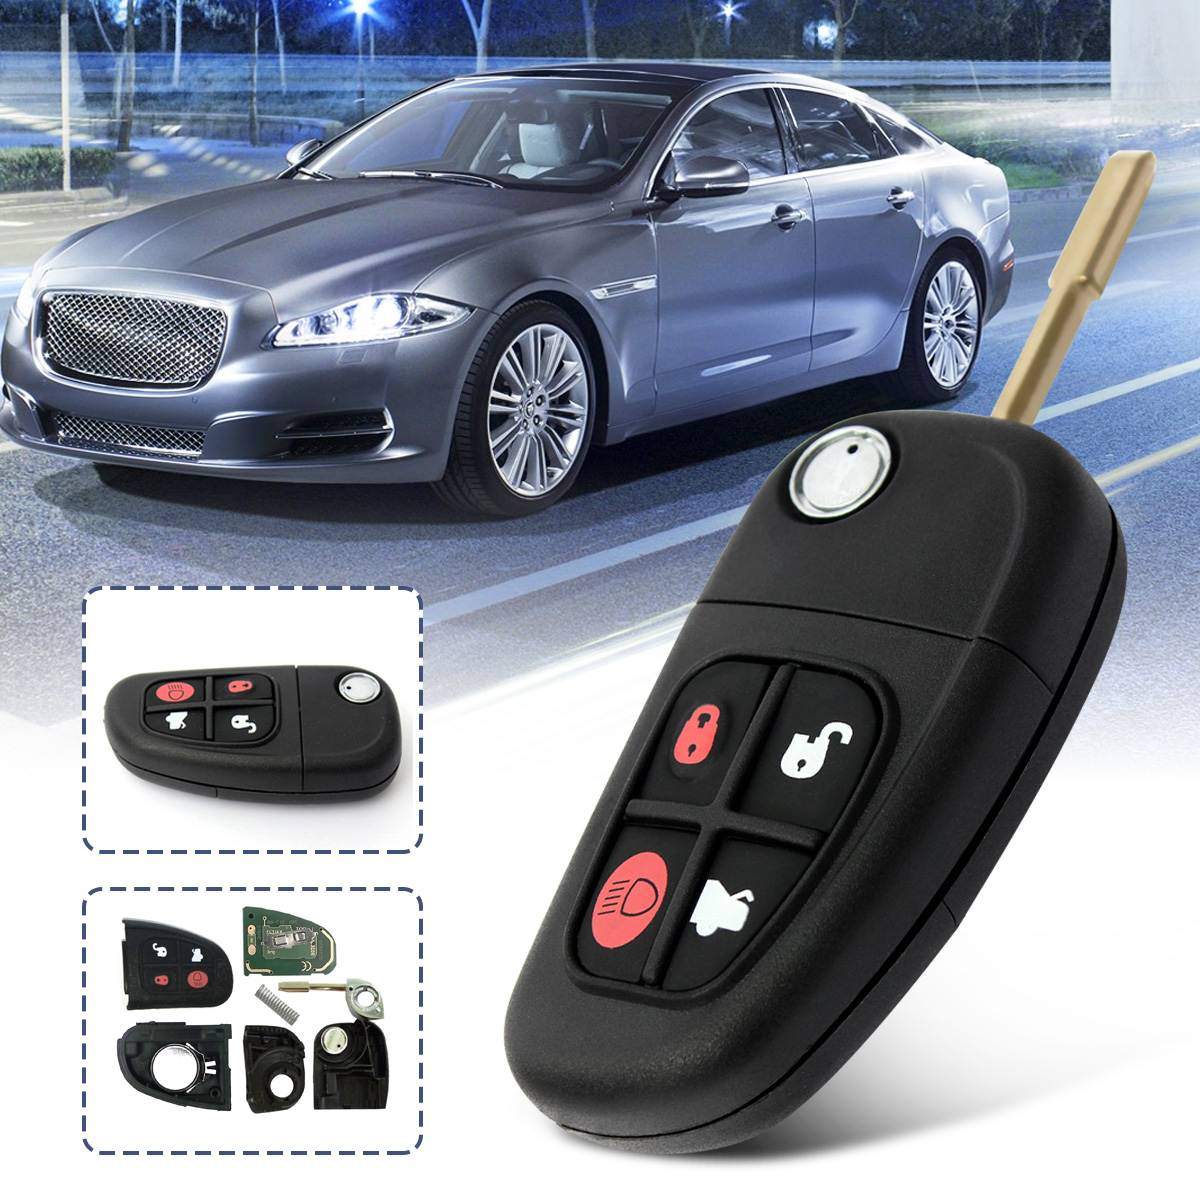 4 Buttons 433MHz Remote Flip Car Key Shell Key Case With 4D60 Chip Fob Replacement For JAGUAR XJ8 S TYPE X TYPE